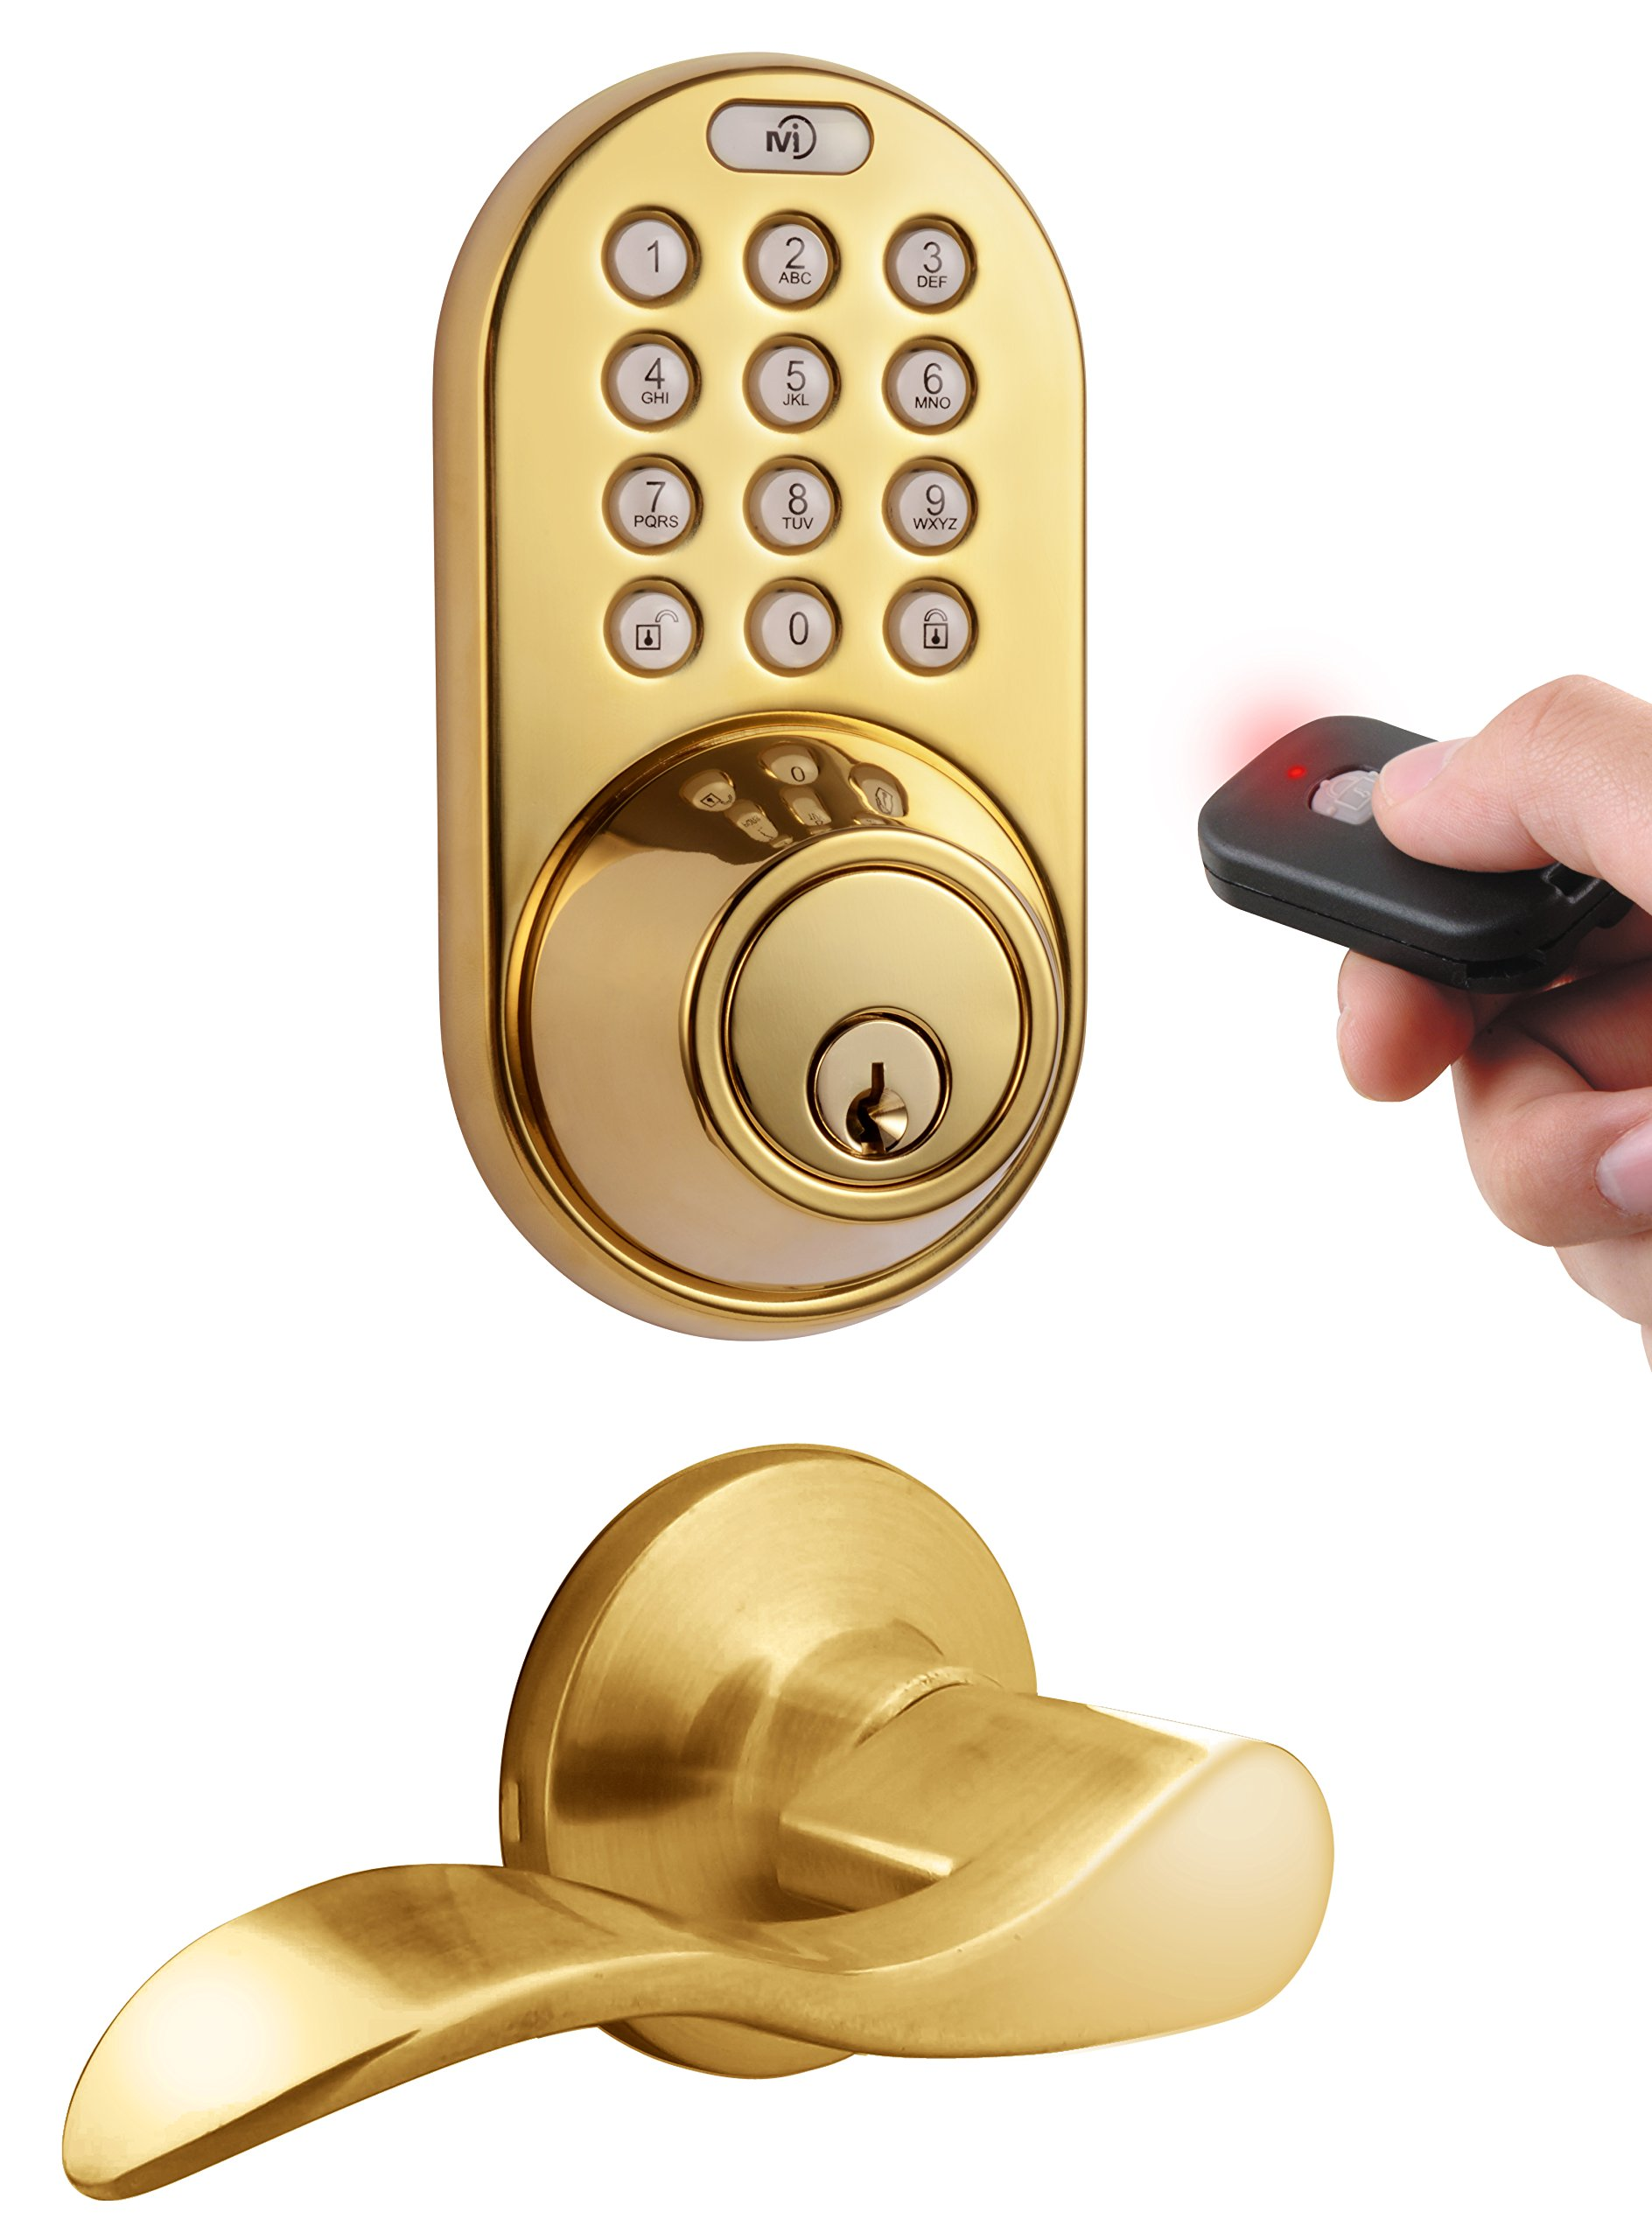 MiLocks XFL-02P Digital Deadbolt Door Lock and Passage Lever Handle Combo with Keyless Entry via Remote Control and Keypad Code for Exterior Doors, Polished Brass